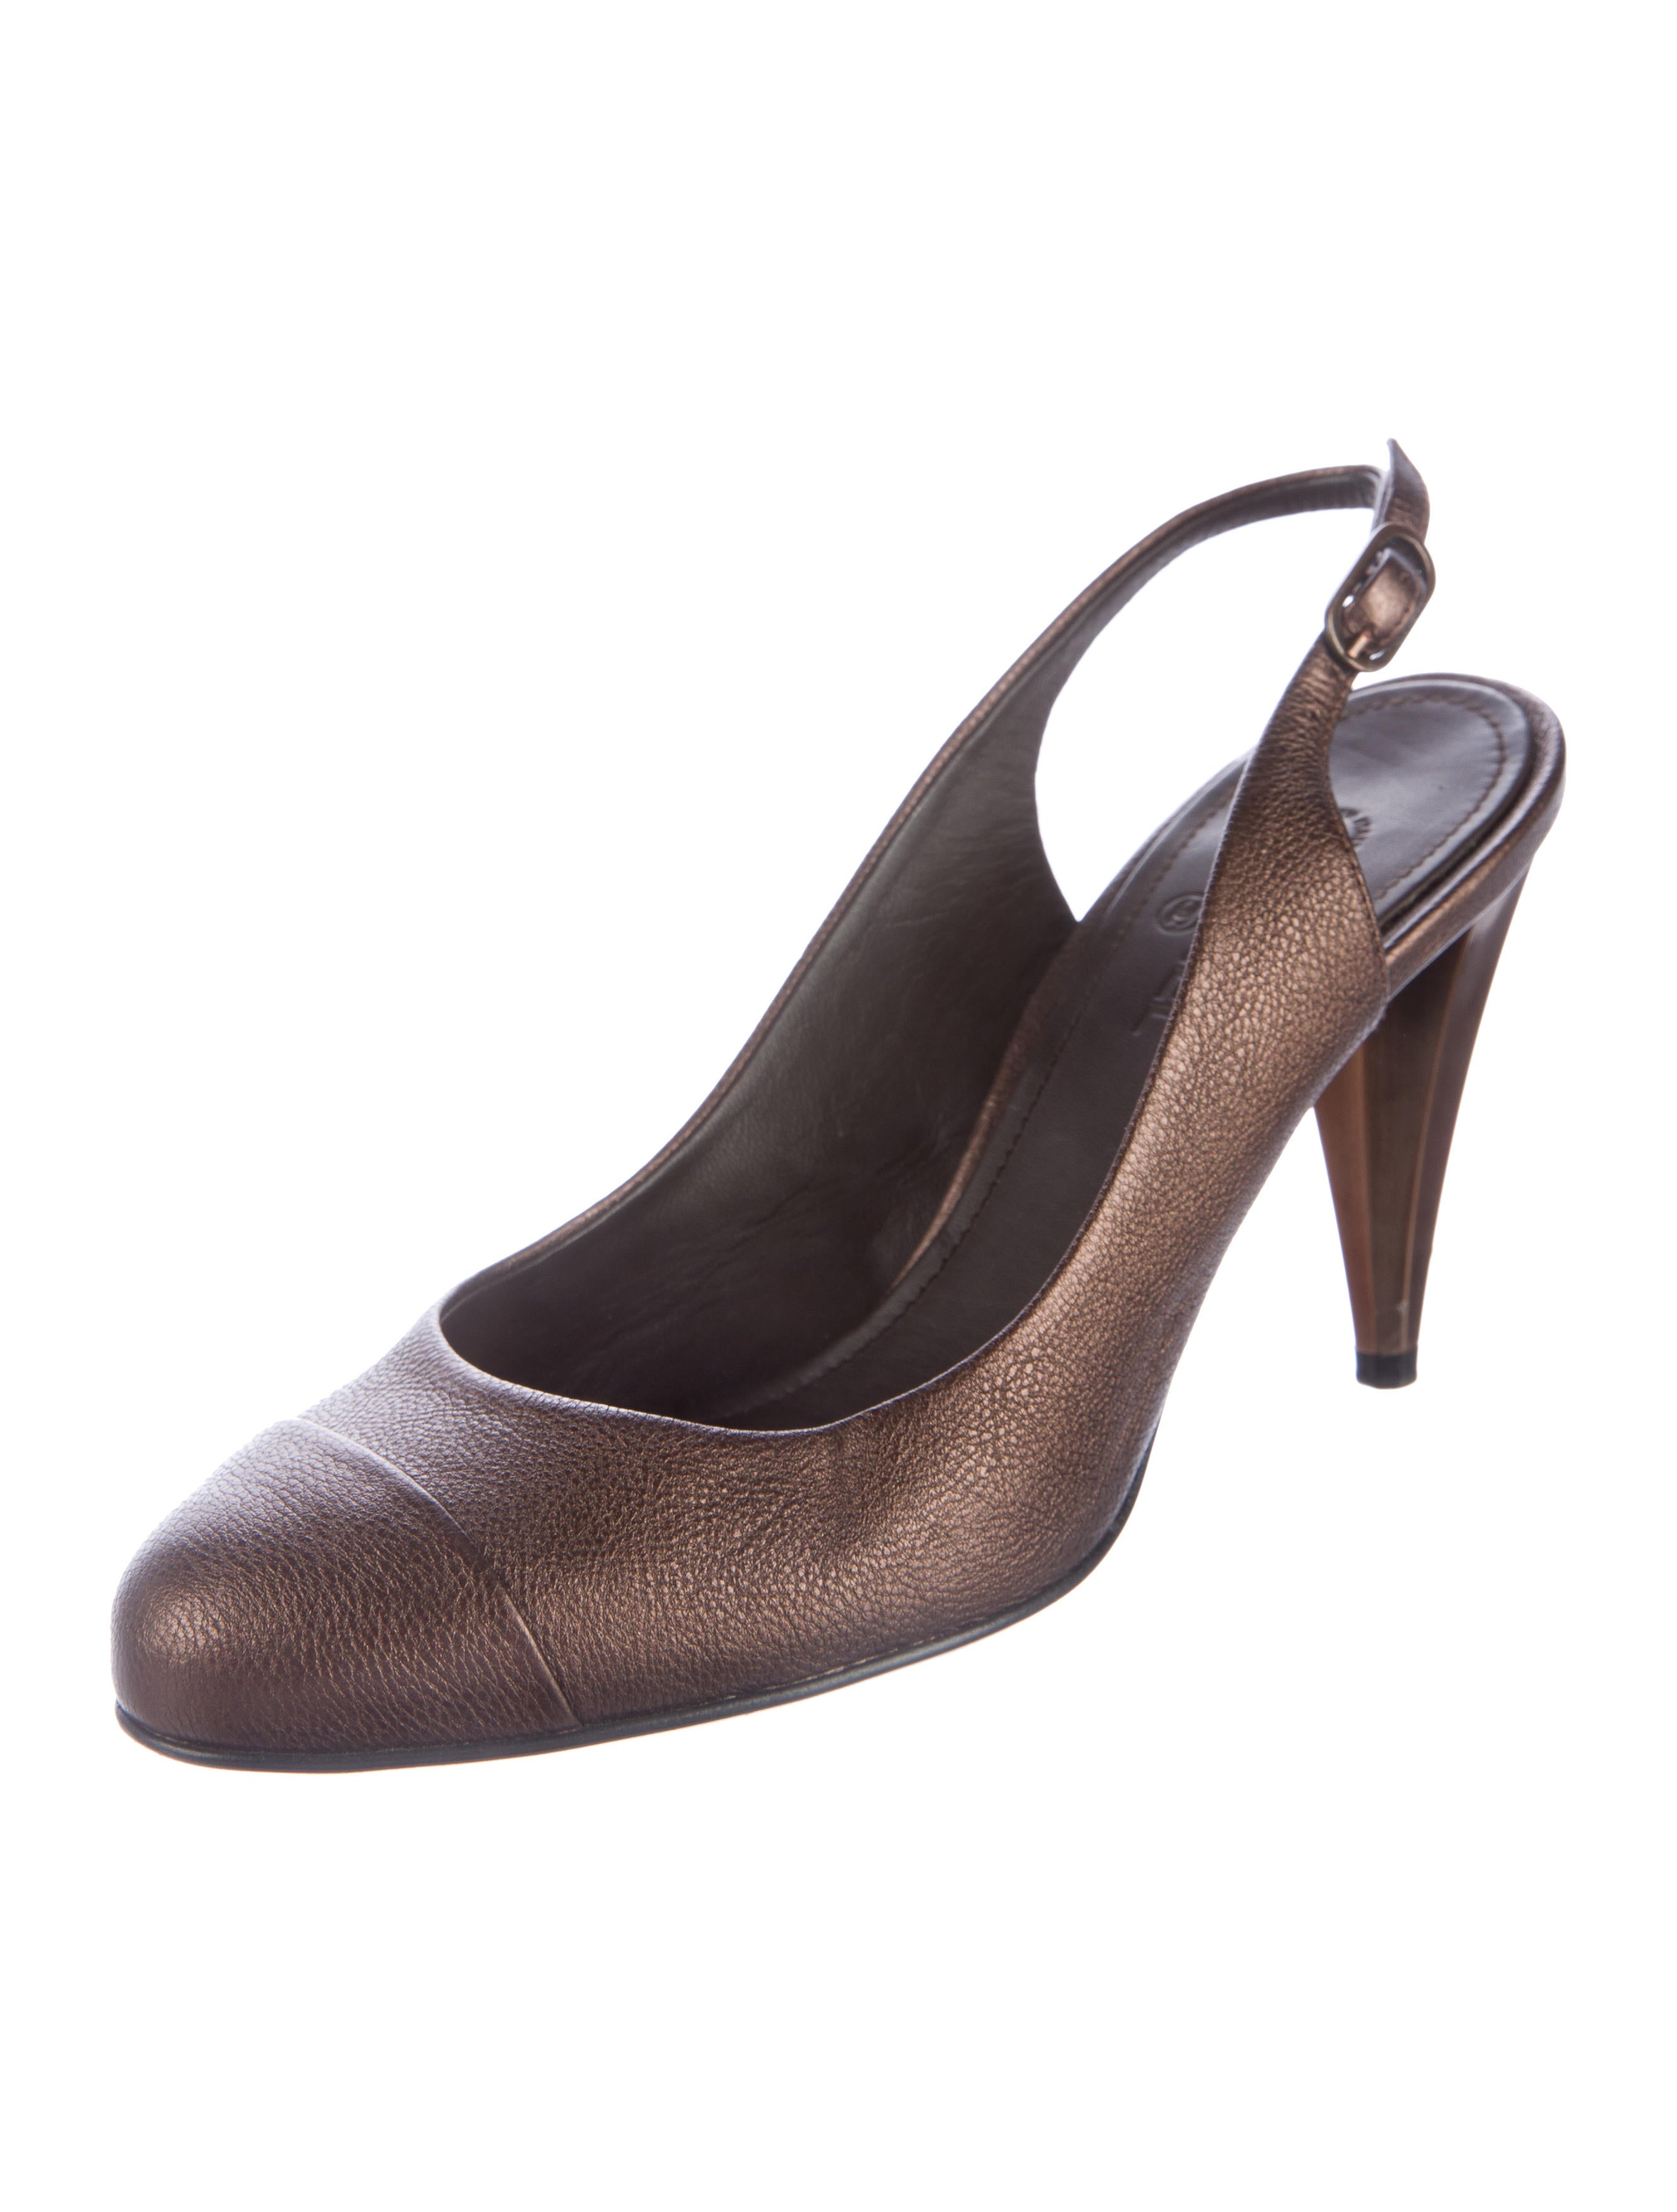 Chanel Metallic Leather Slingback Pumps - Shoes - CHA176958 | The RealReal